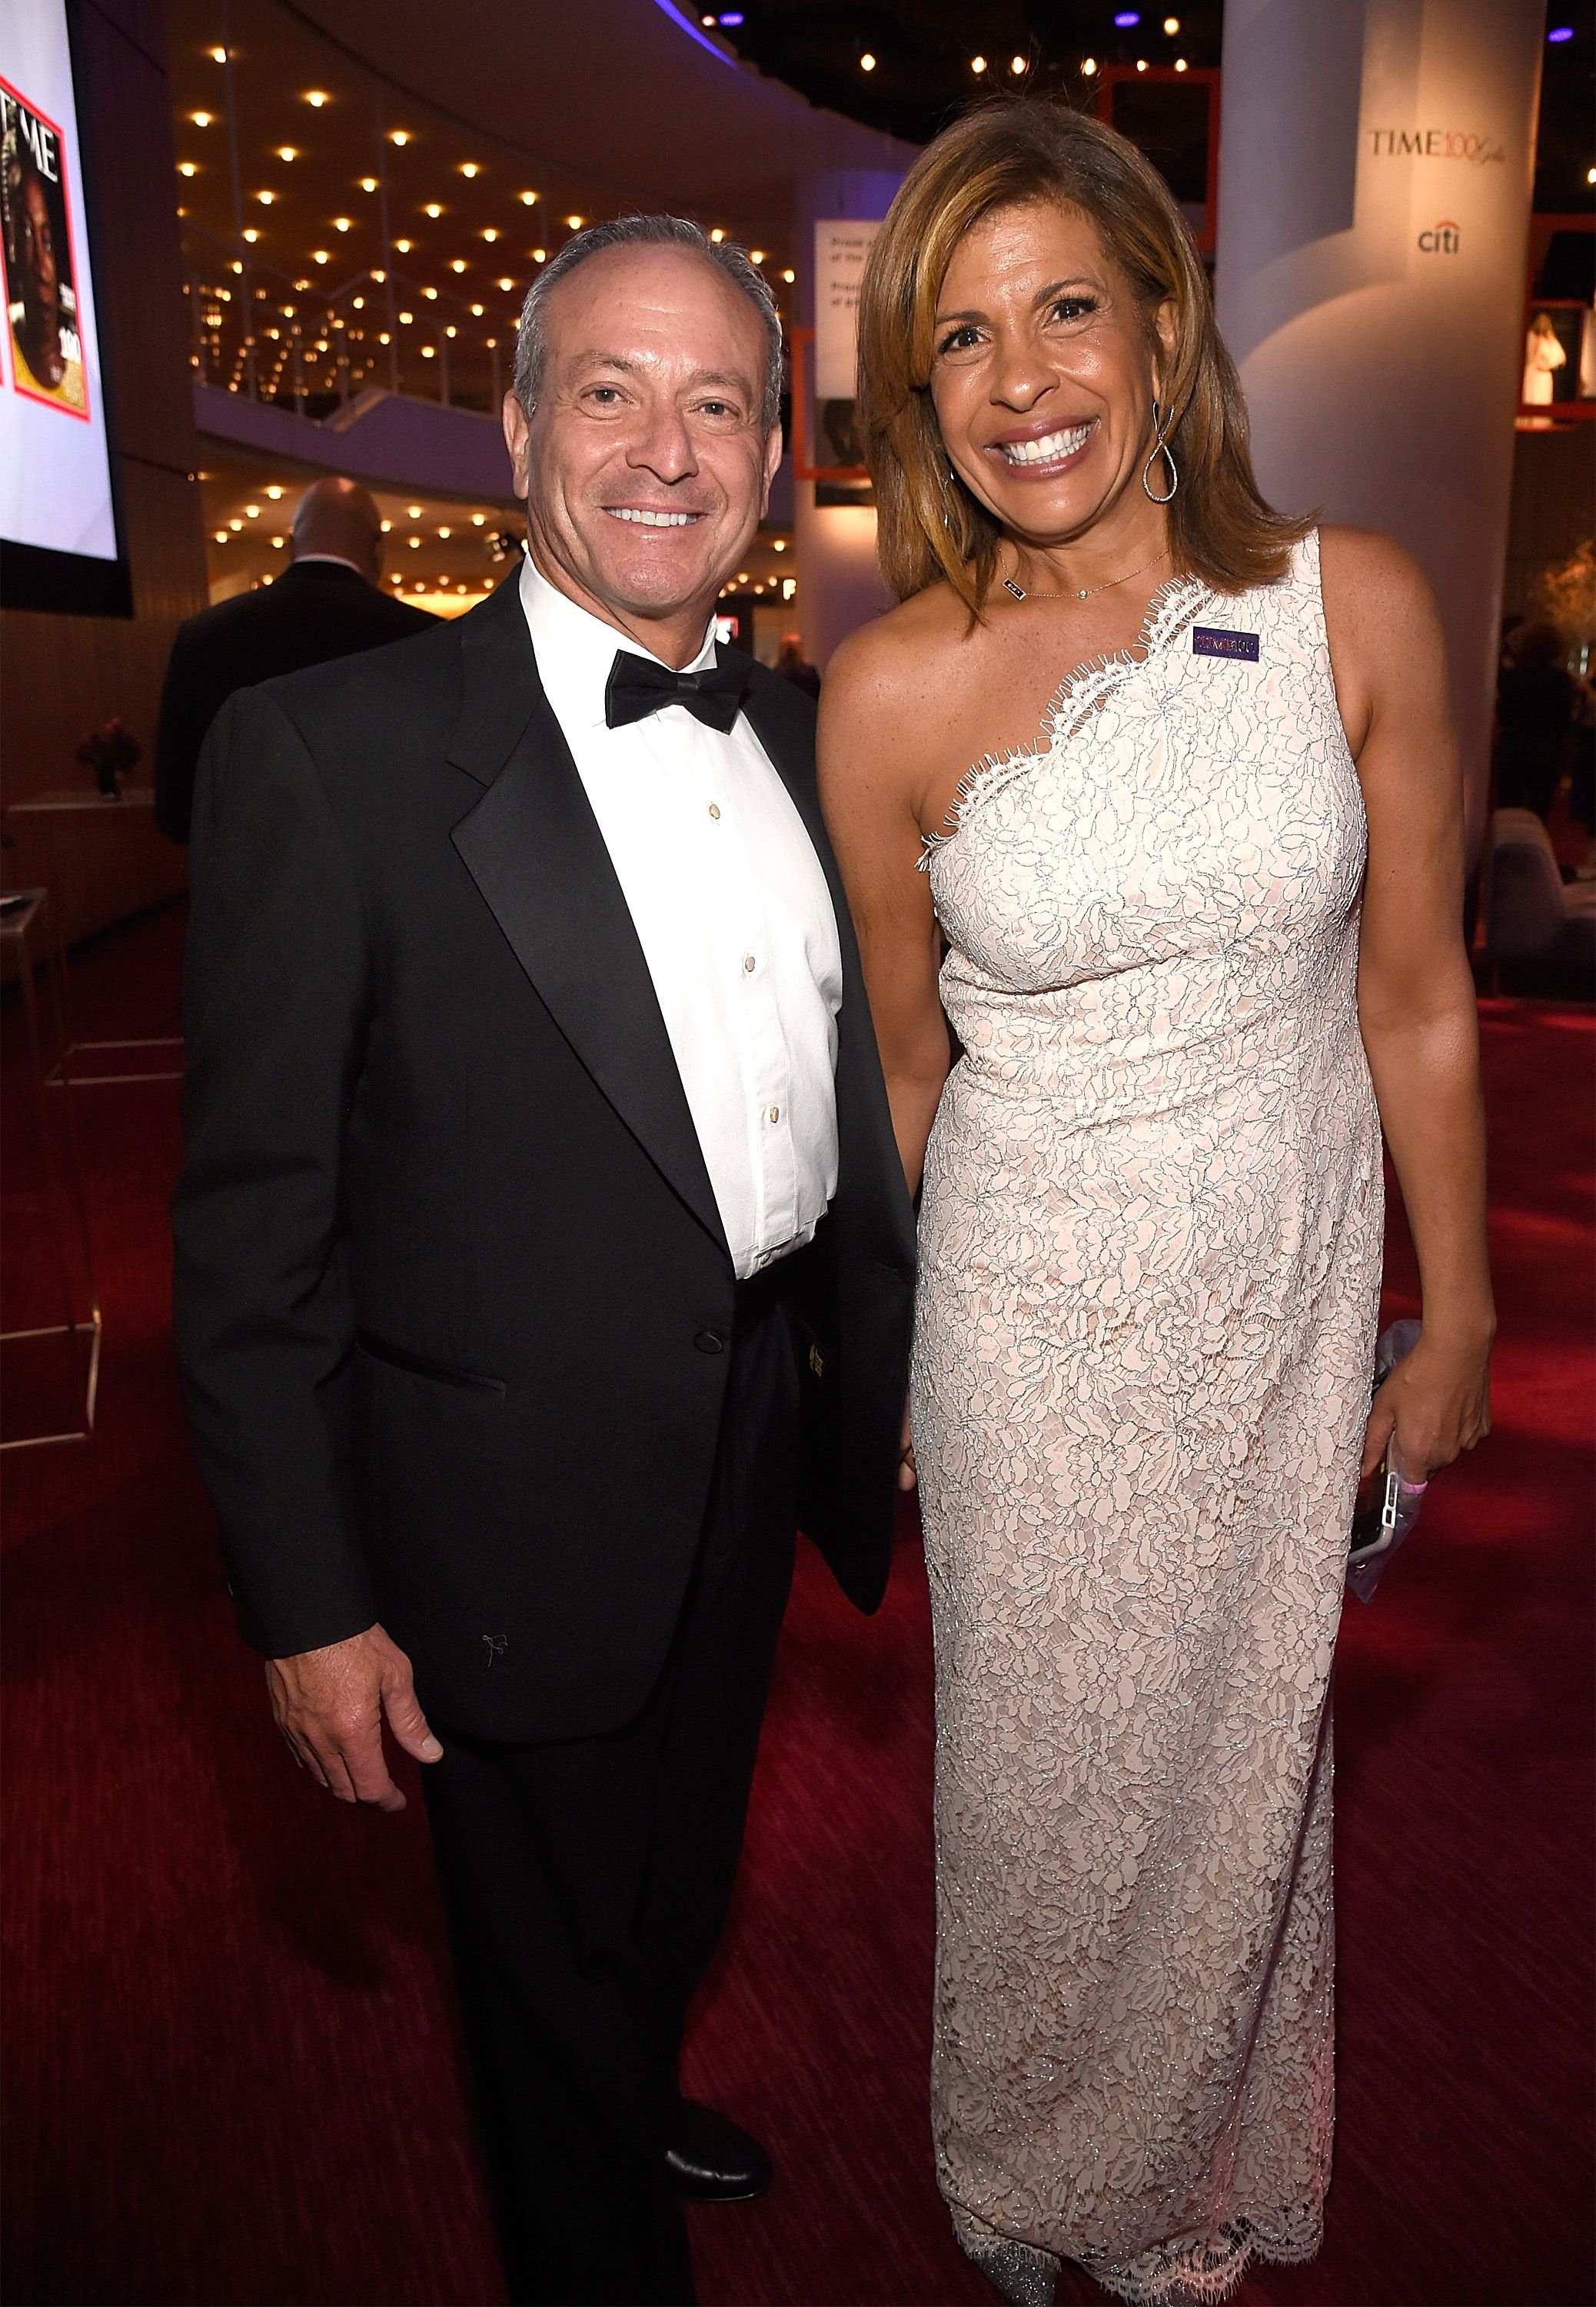 Joel Schiffman and Hoda Kotb attend the 2018 Time 100 Gala at Jazz at Lincoln Center on April 24, 2018   Photo: Getty Images